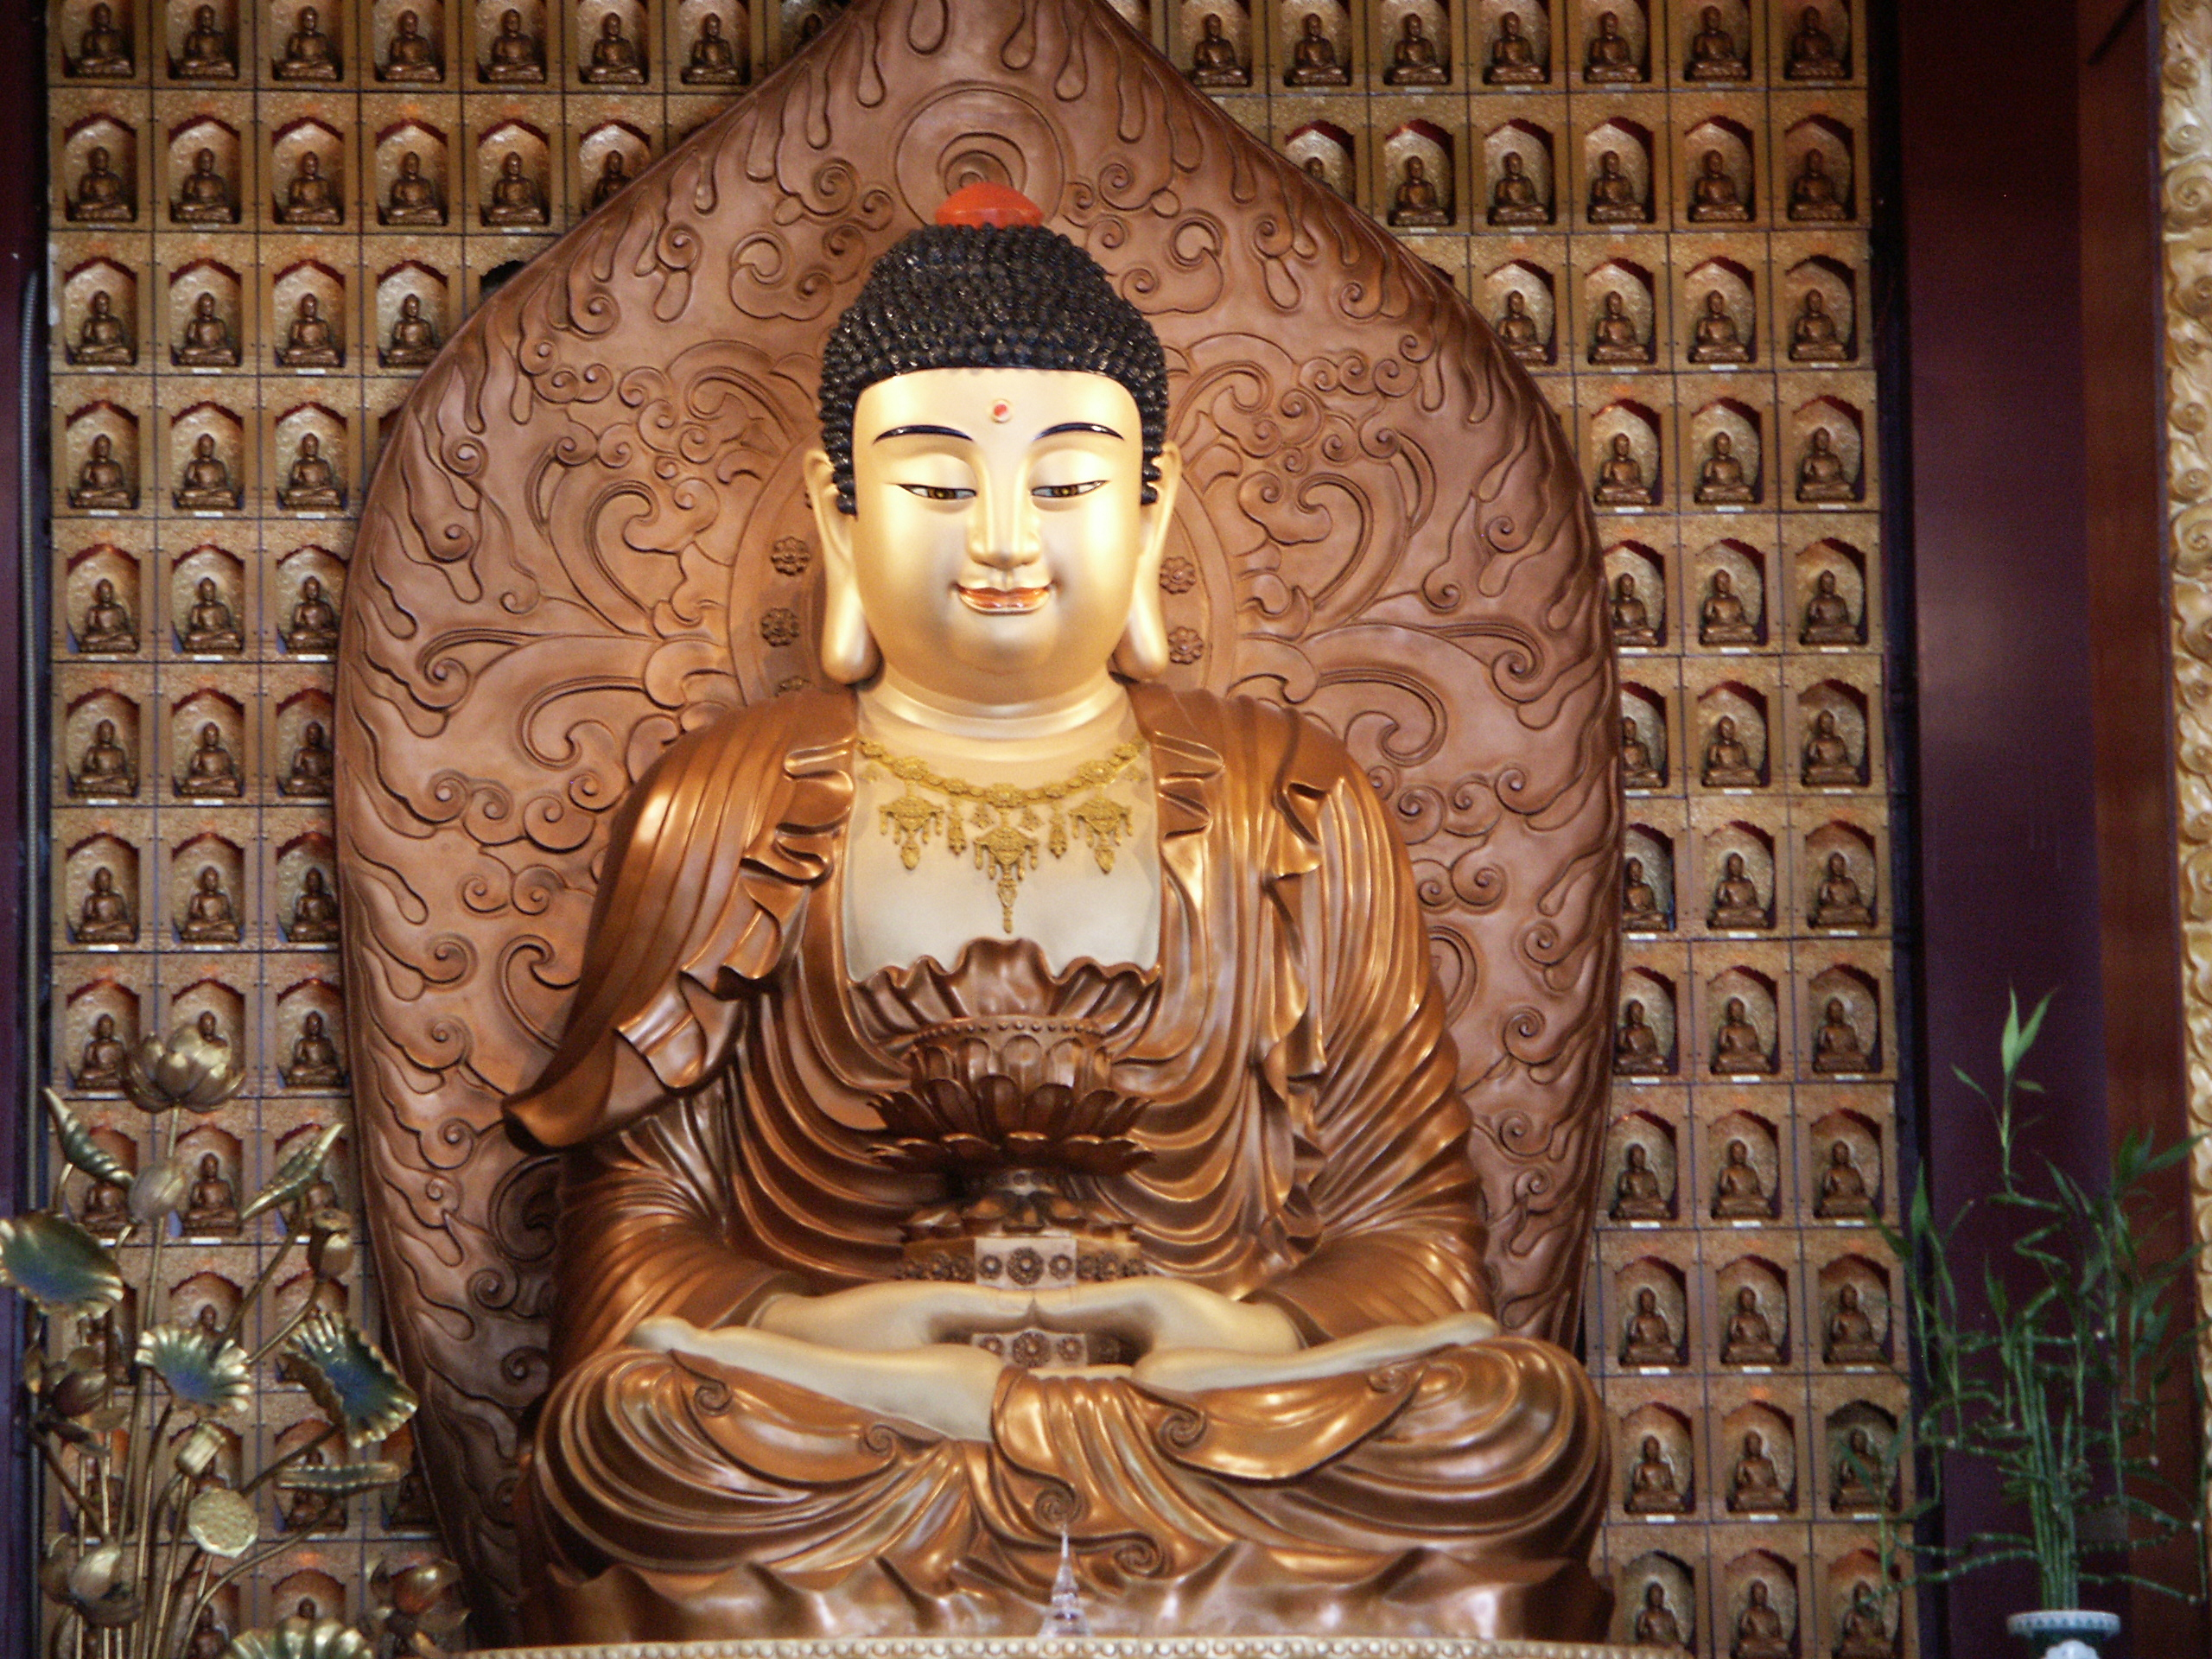 world religions report on buddhism It is a fact that we live in a religiously diverse world religious diversity can and  often does result in grave misunderstanding, hostility, and, as we know all too.